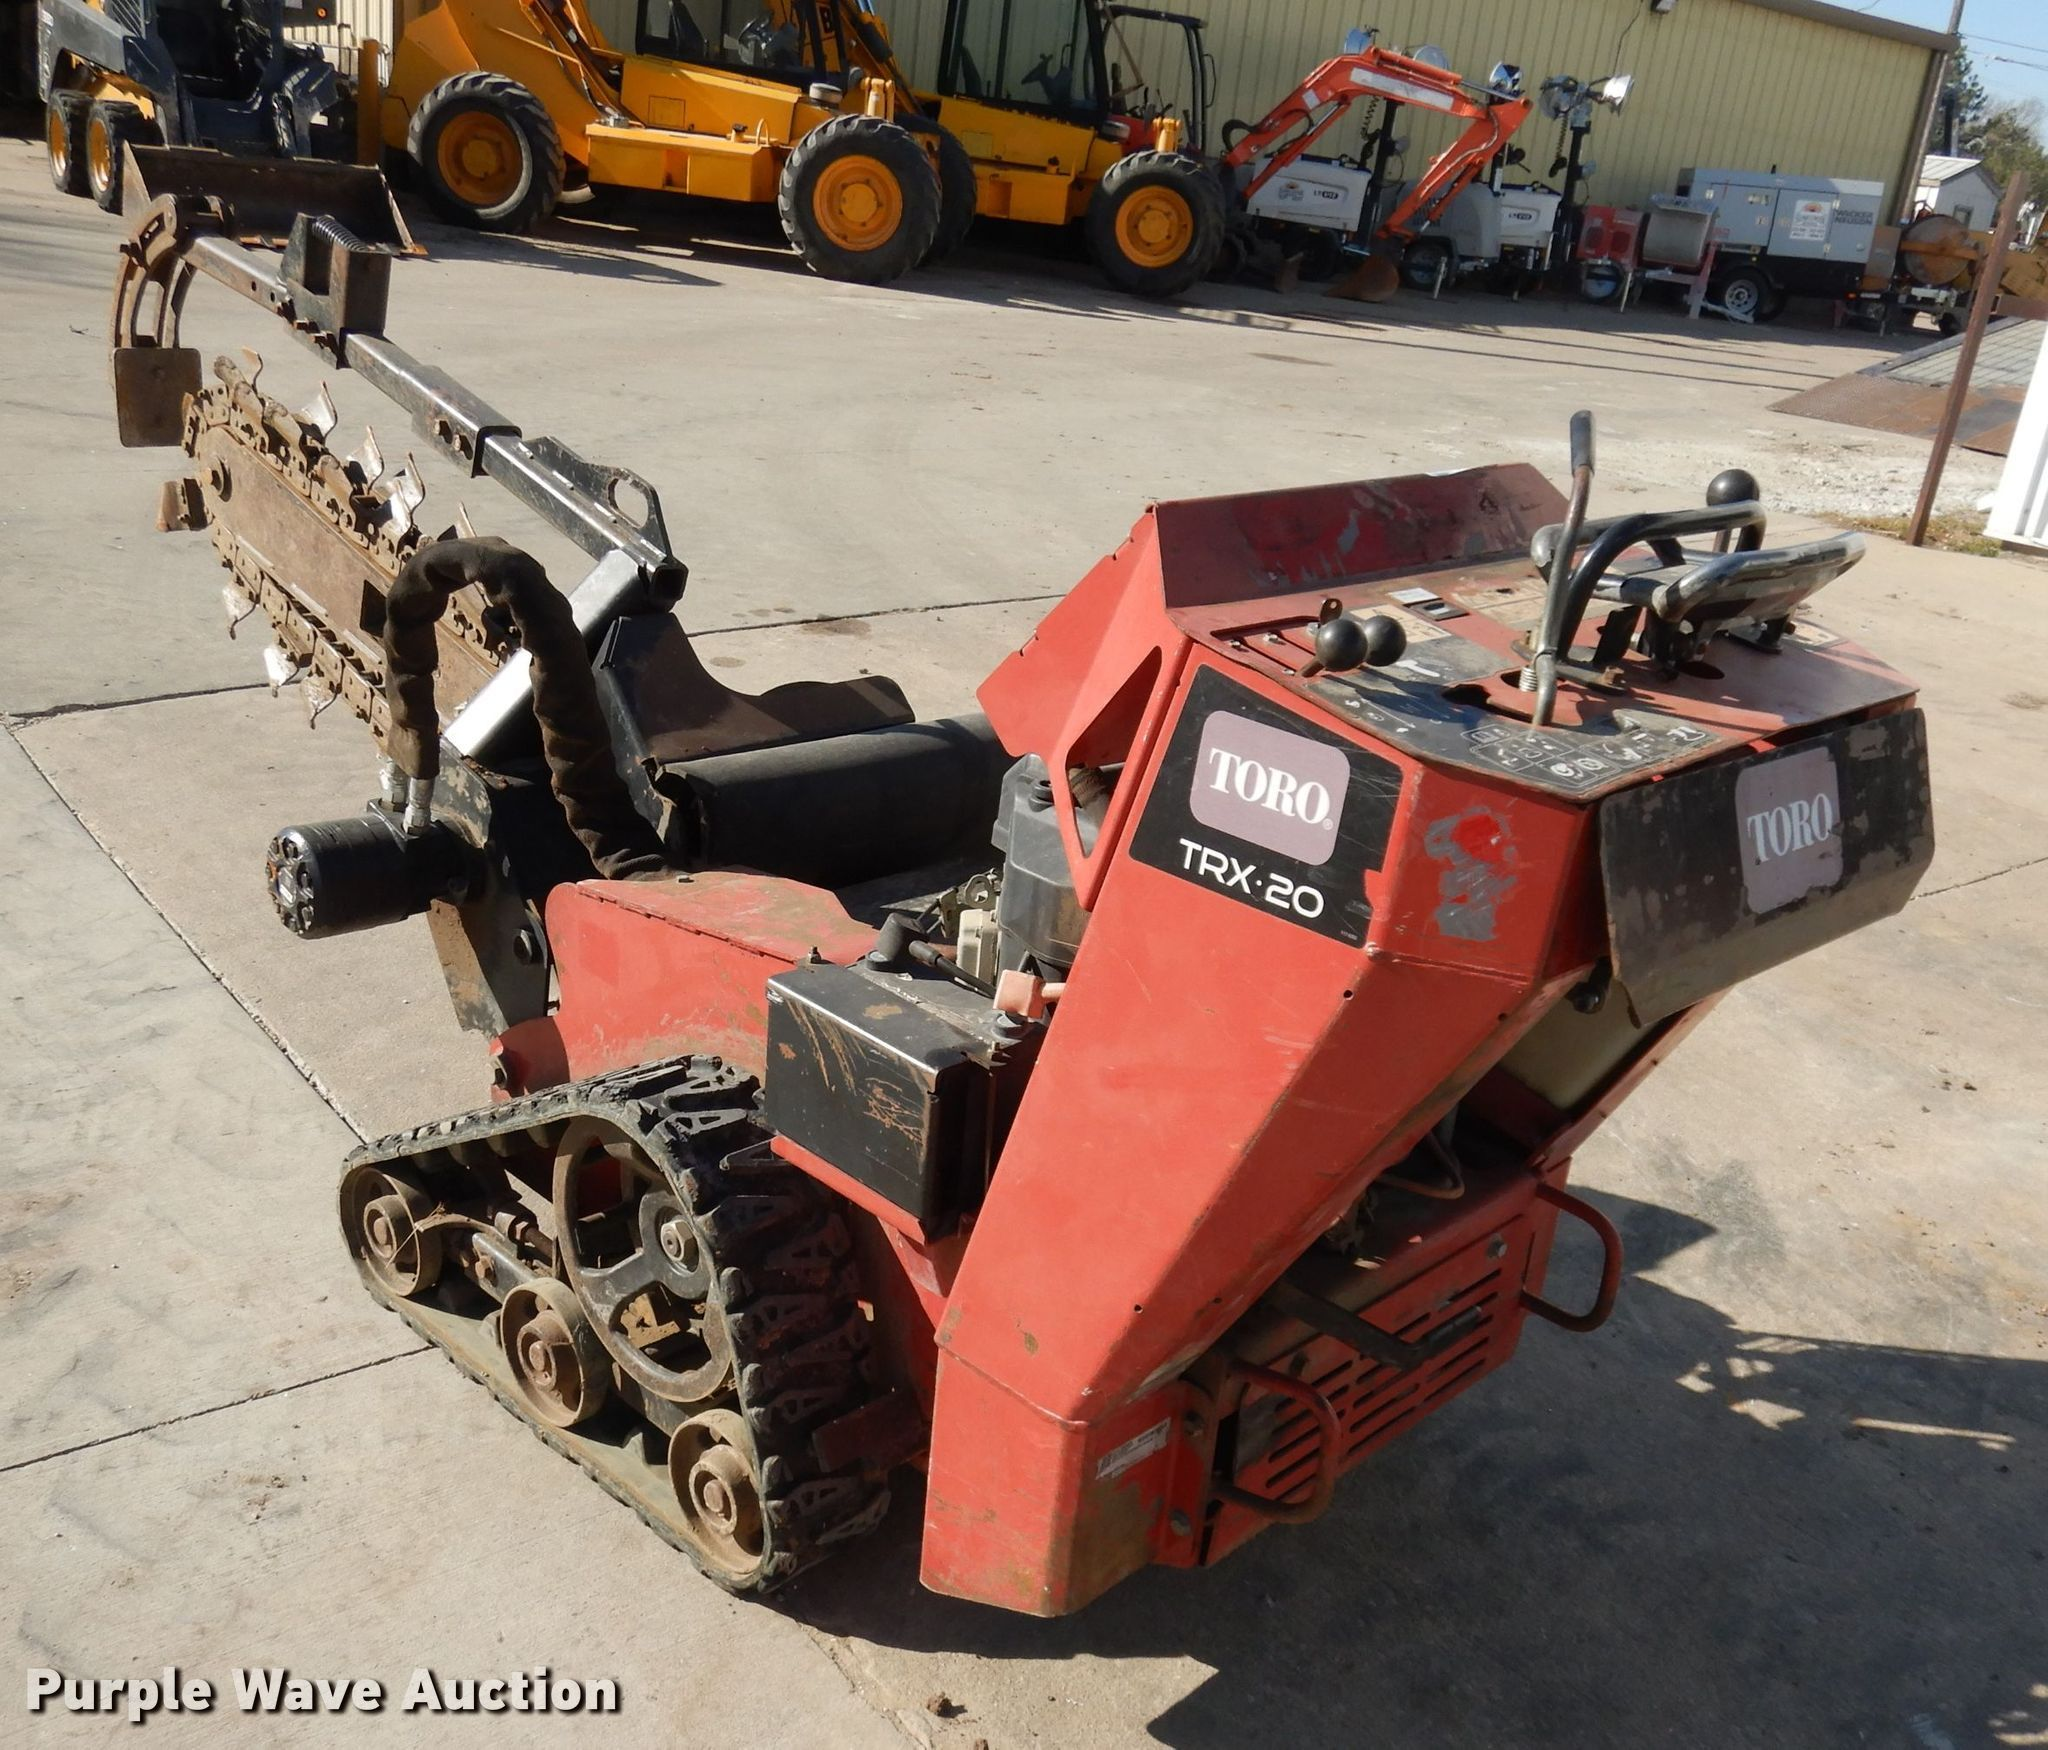 Toro TRX20 trencher for sale or rent sunflower equipment rentals topeka lawrence kansas blue springs missouri